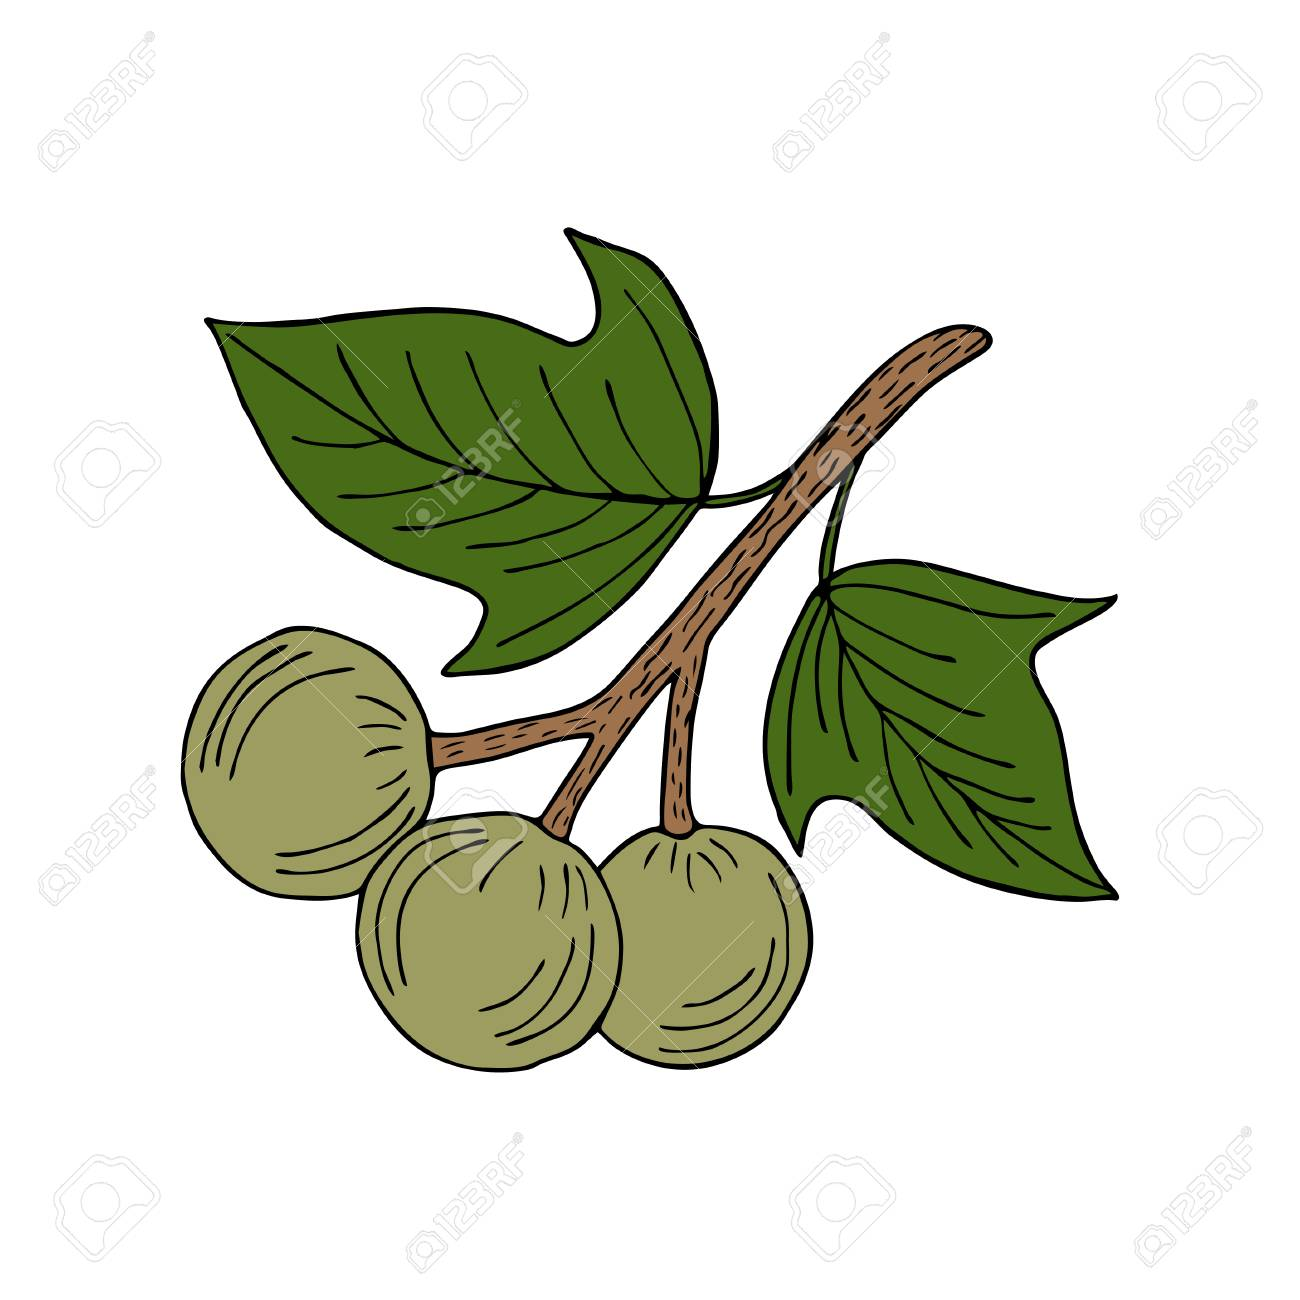 Kukui nut tree (Aleurites moluccana). Nuts, plant, berry, fruit natural organic butter ingredient. Hand drawn ink sketch illustration. Treatment, cosmetics, food ingredient. Isolated. - 86852979